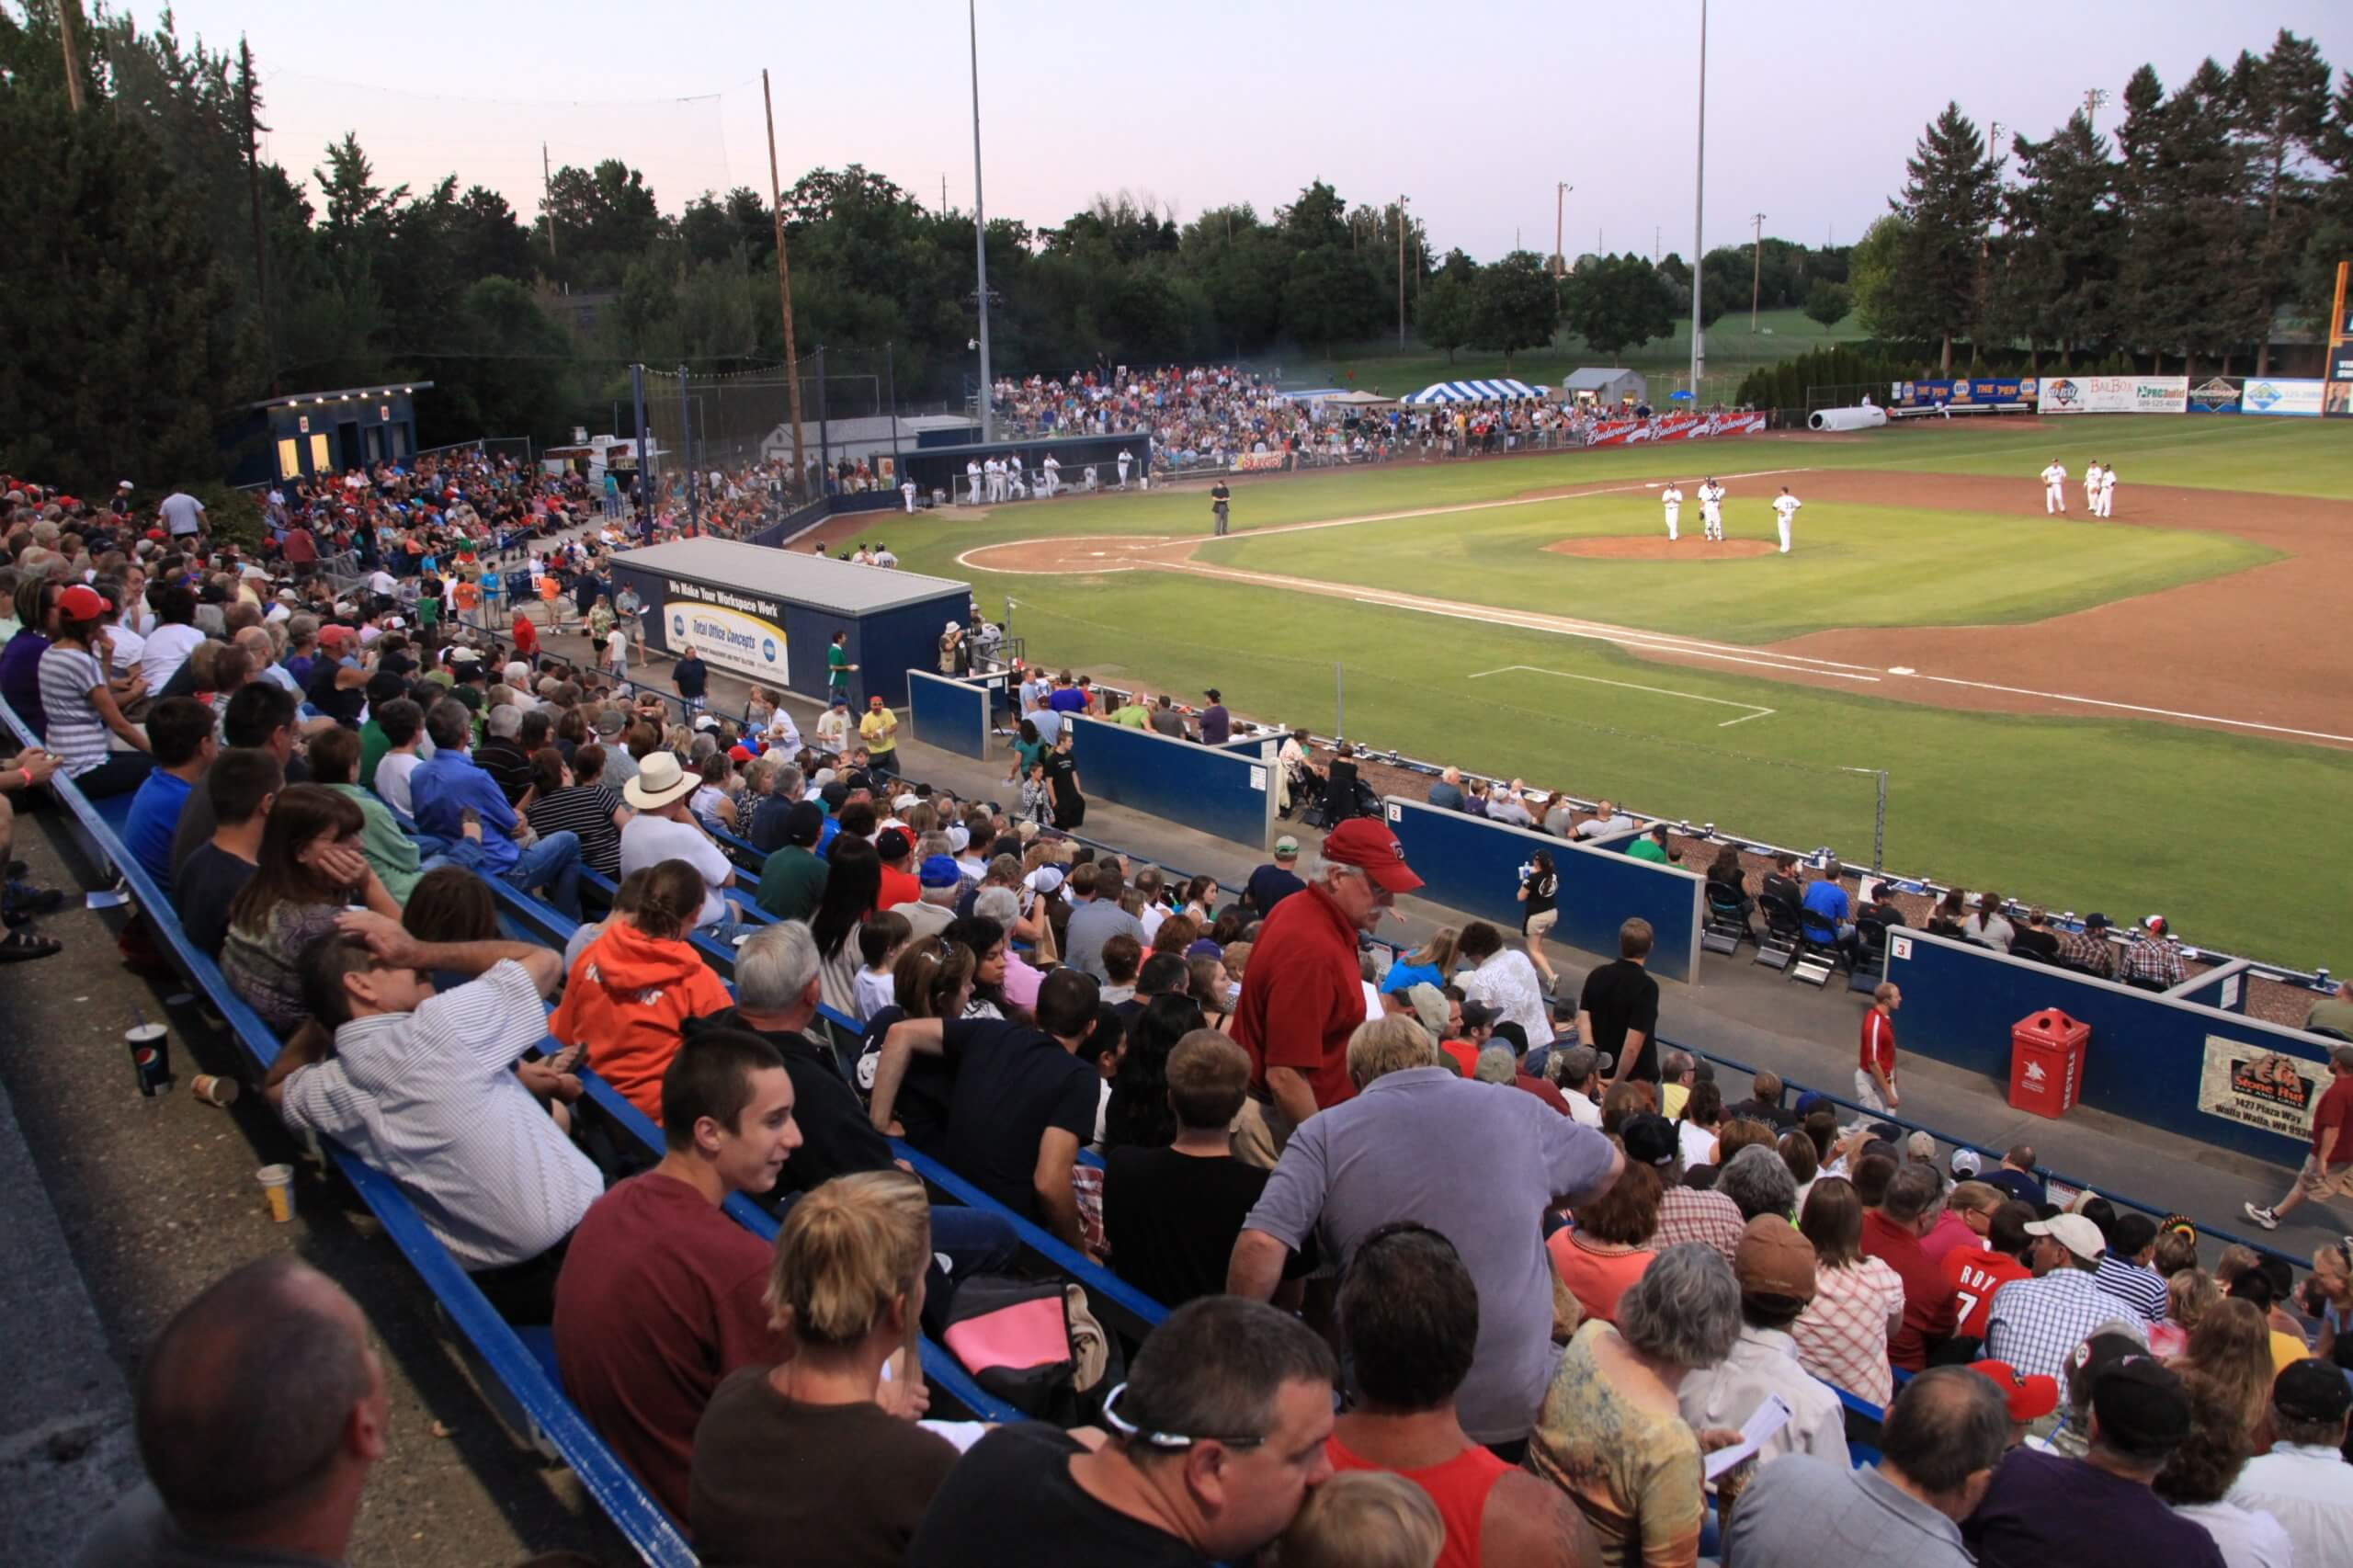 Fans Pack the Stands at Walla Walla's Borleske Stadium